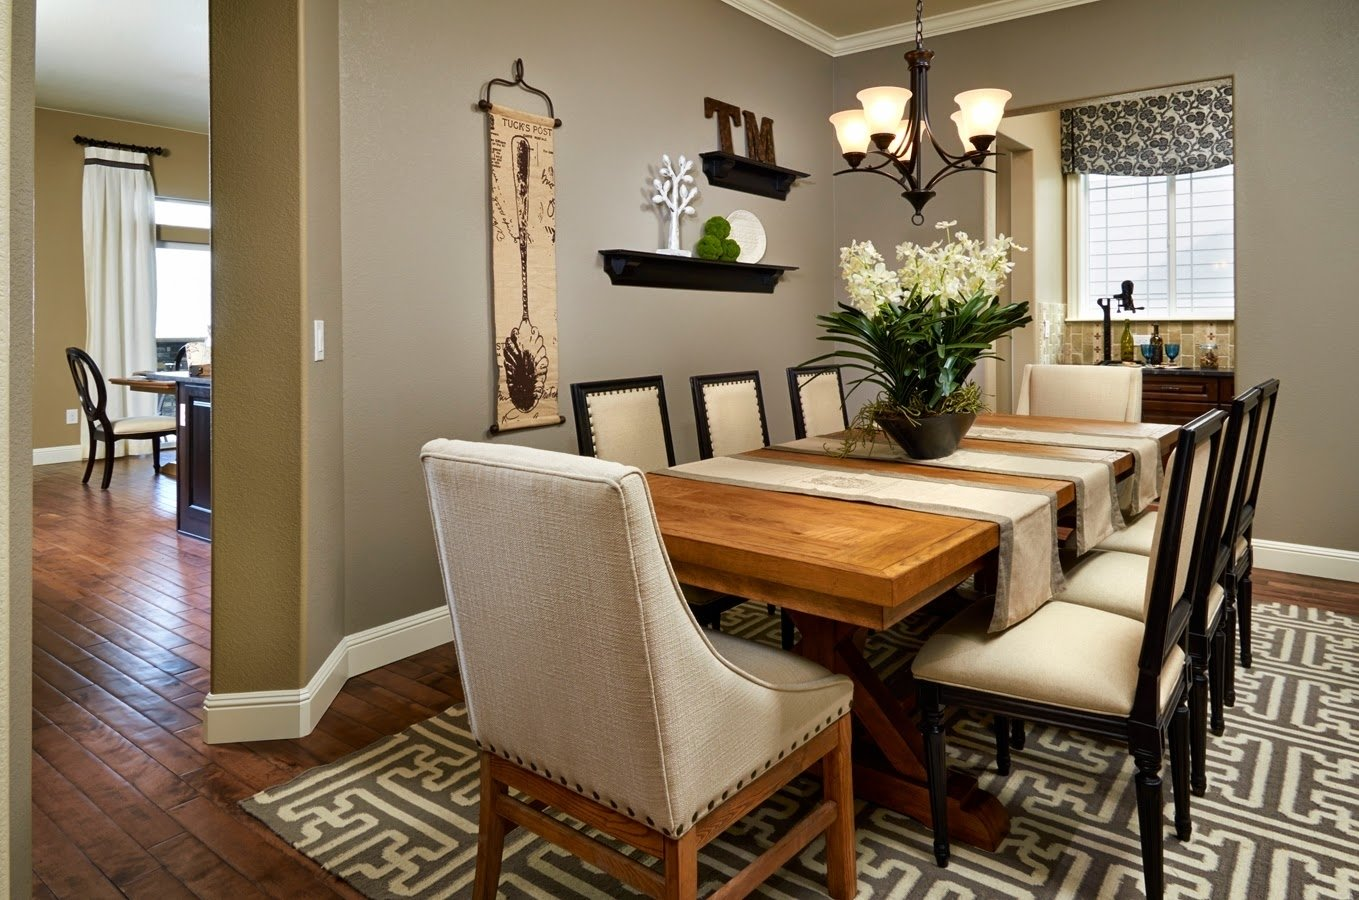 10 Pretty Dining Room Table Centerpieces Ideas best centerpiece ideas for dining room table zachary horne homes 2 2020